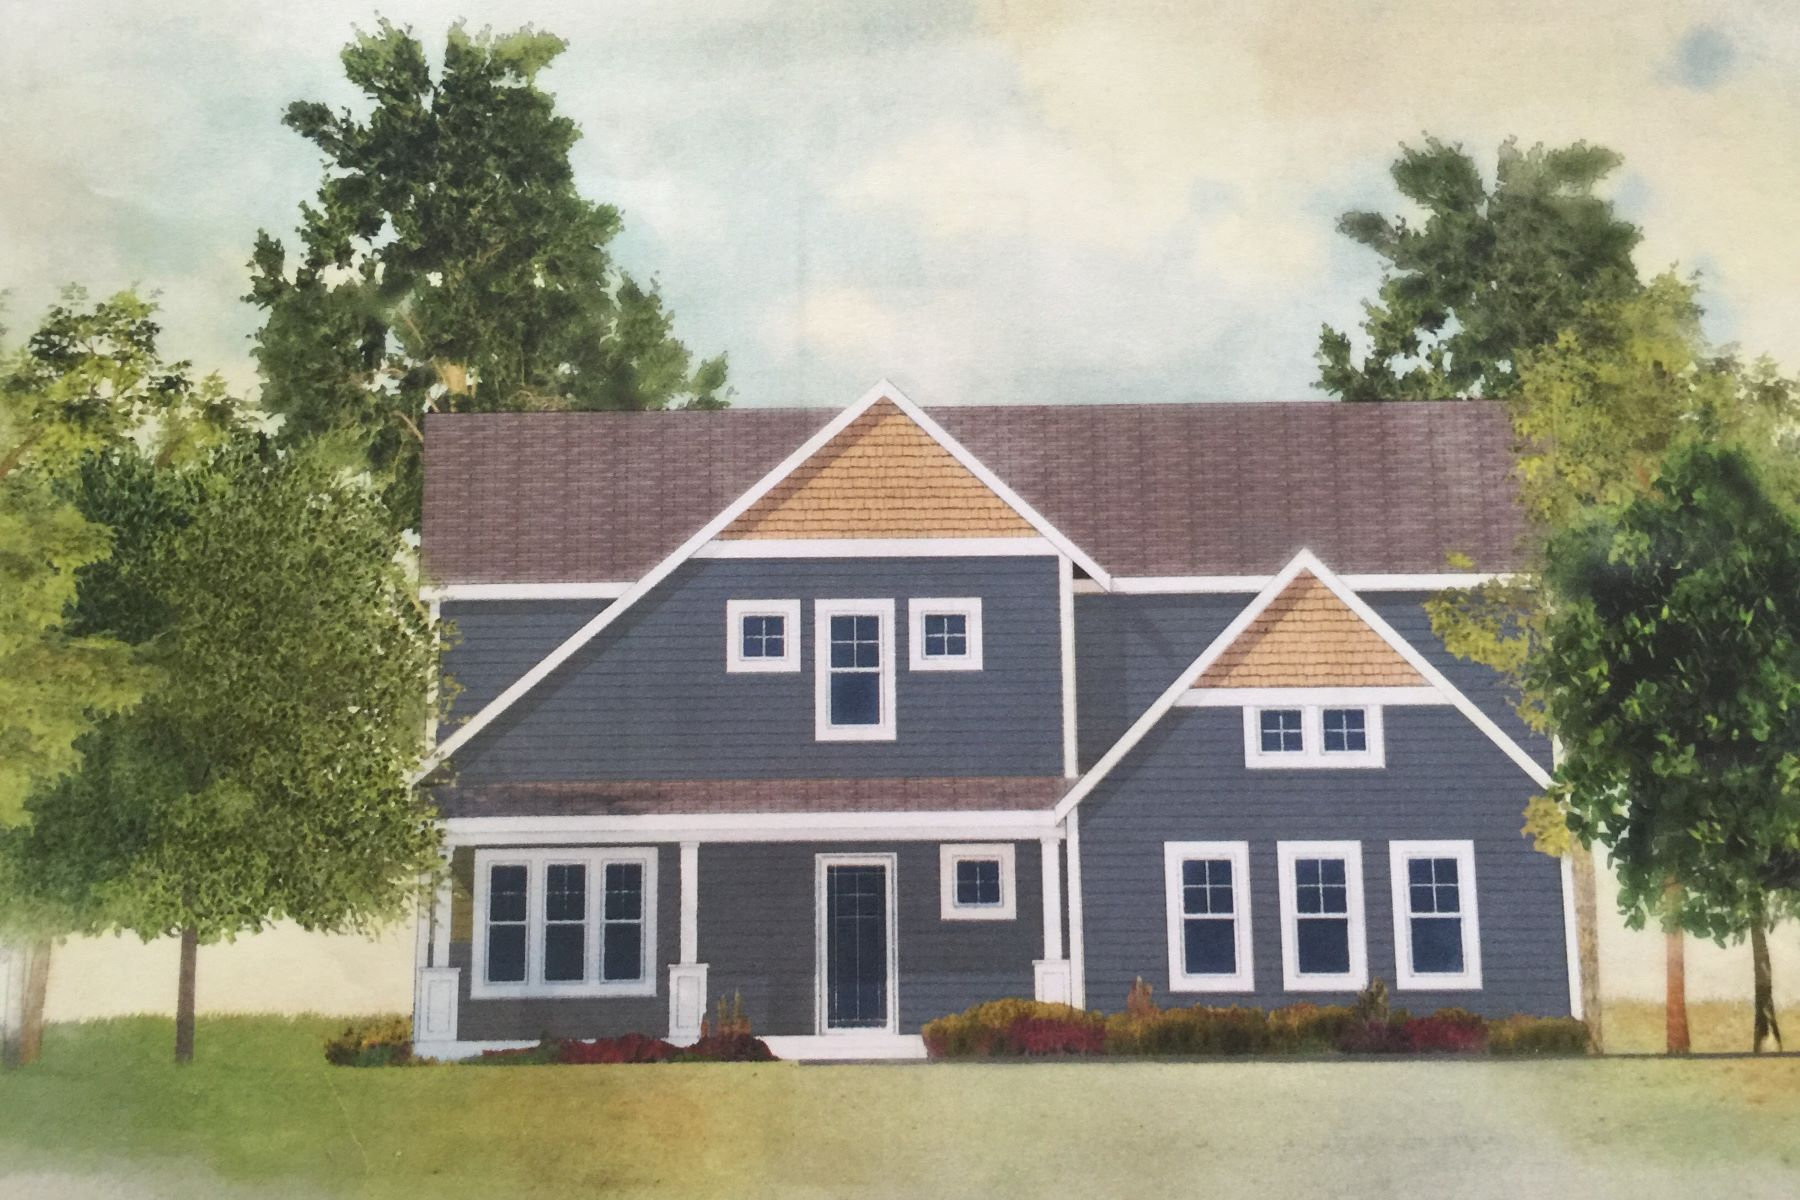 Moradia para Venda às Autumn Ridge Development 4 Autumn Ridge Westbrook, Connecticut, 06498 Estados Unidos